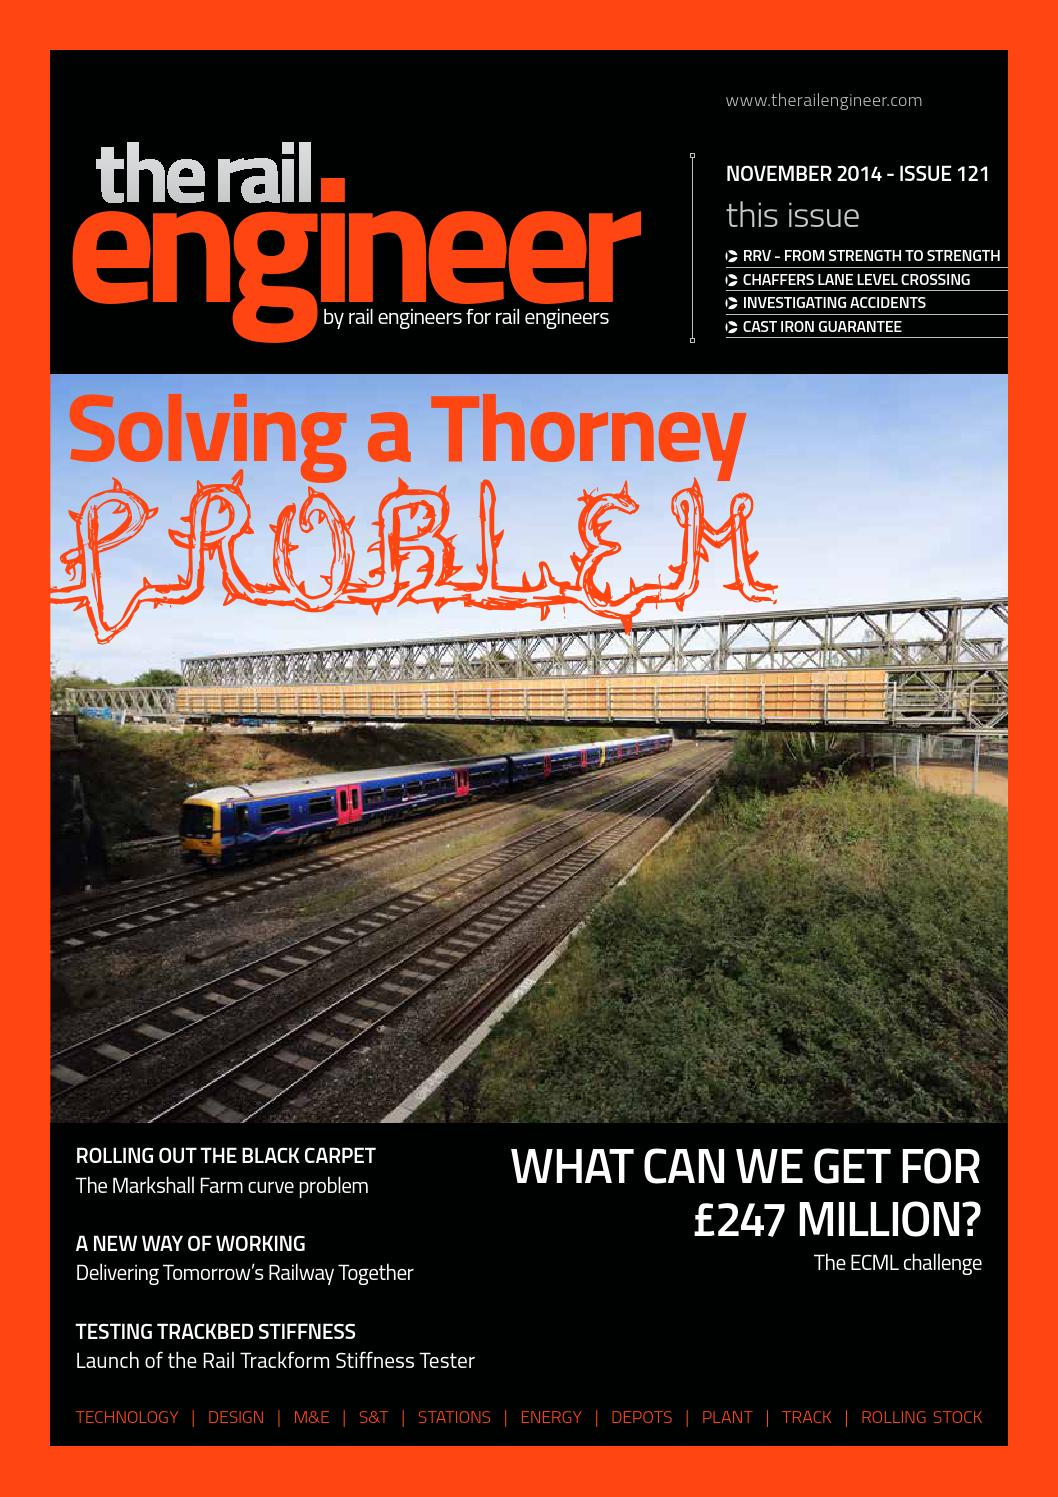 The Rail Engineer Issue 121 November 2014 By Rail